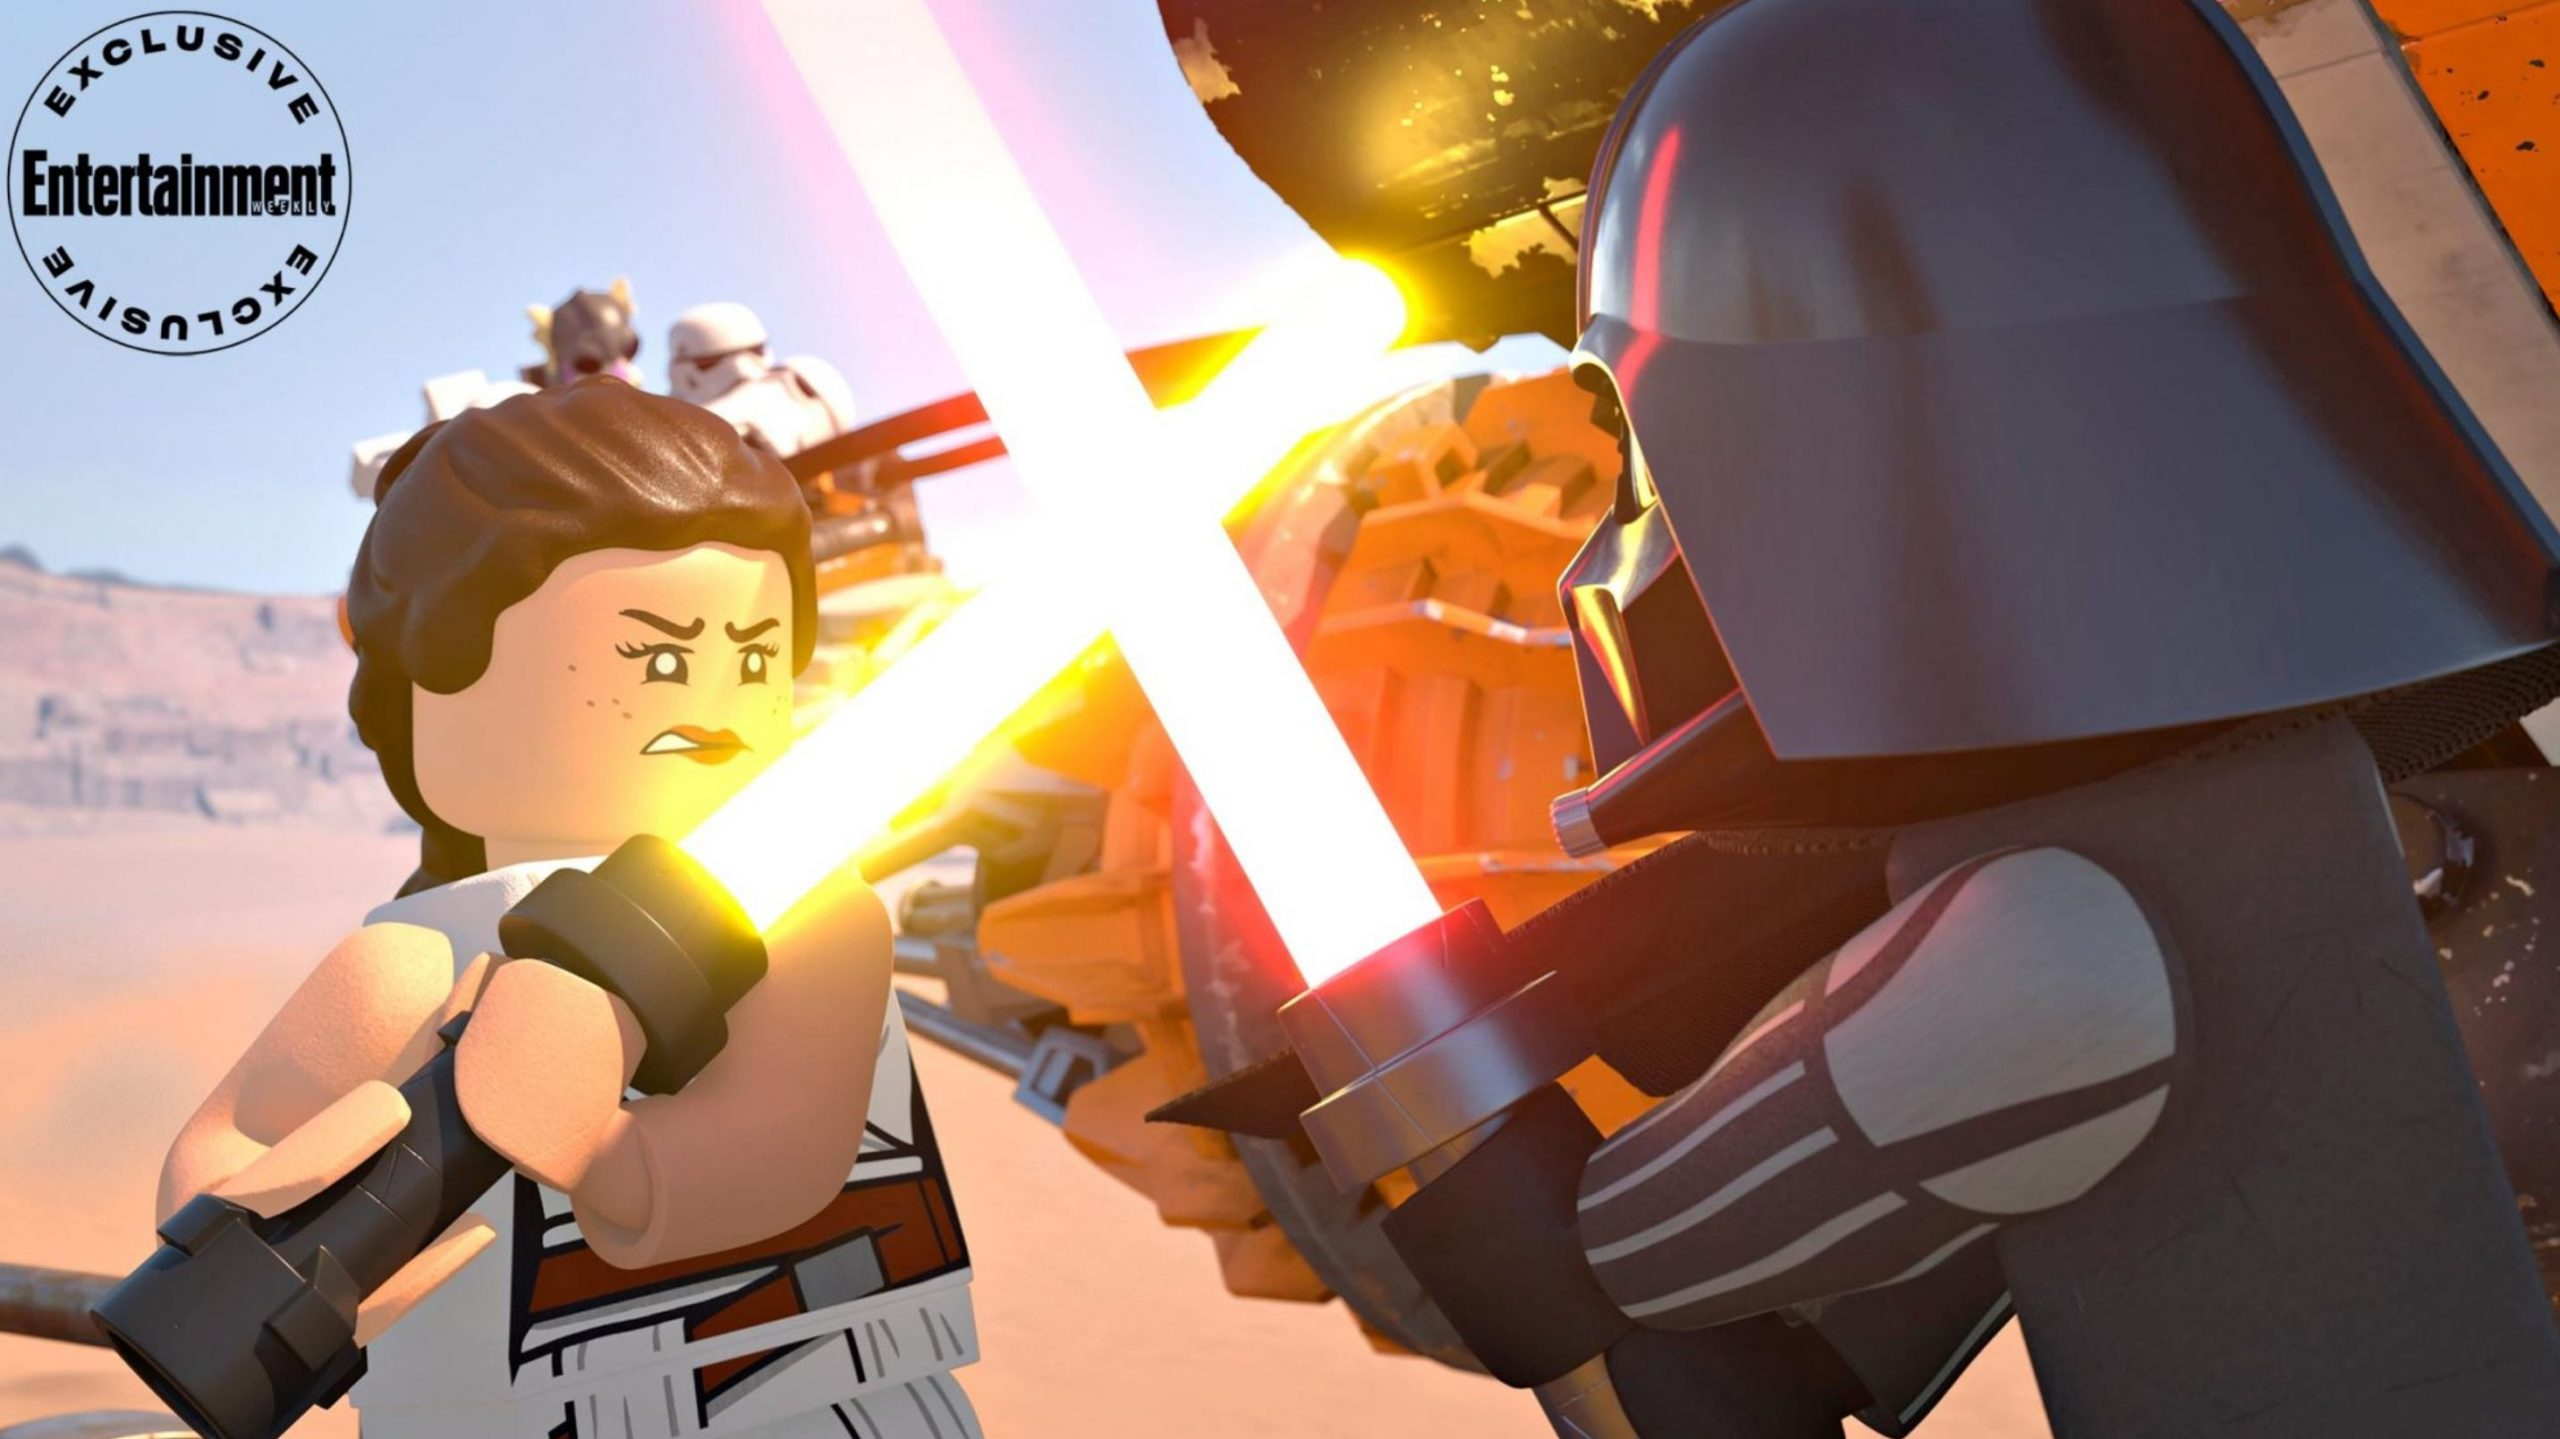 Rey fights Darth Vader in the Lego Star Wars Holiday Special